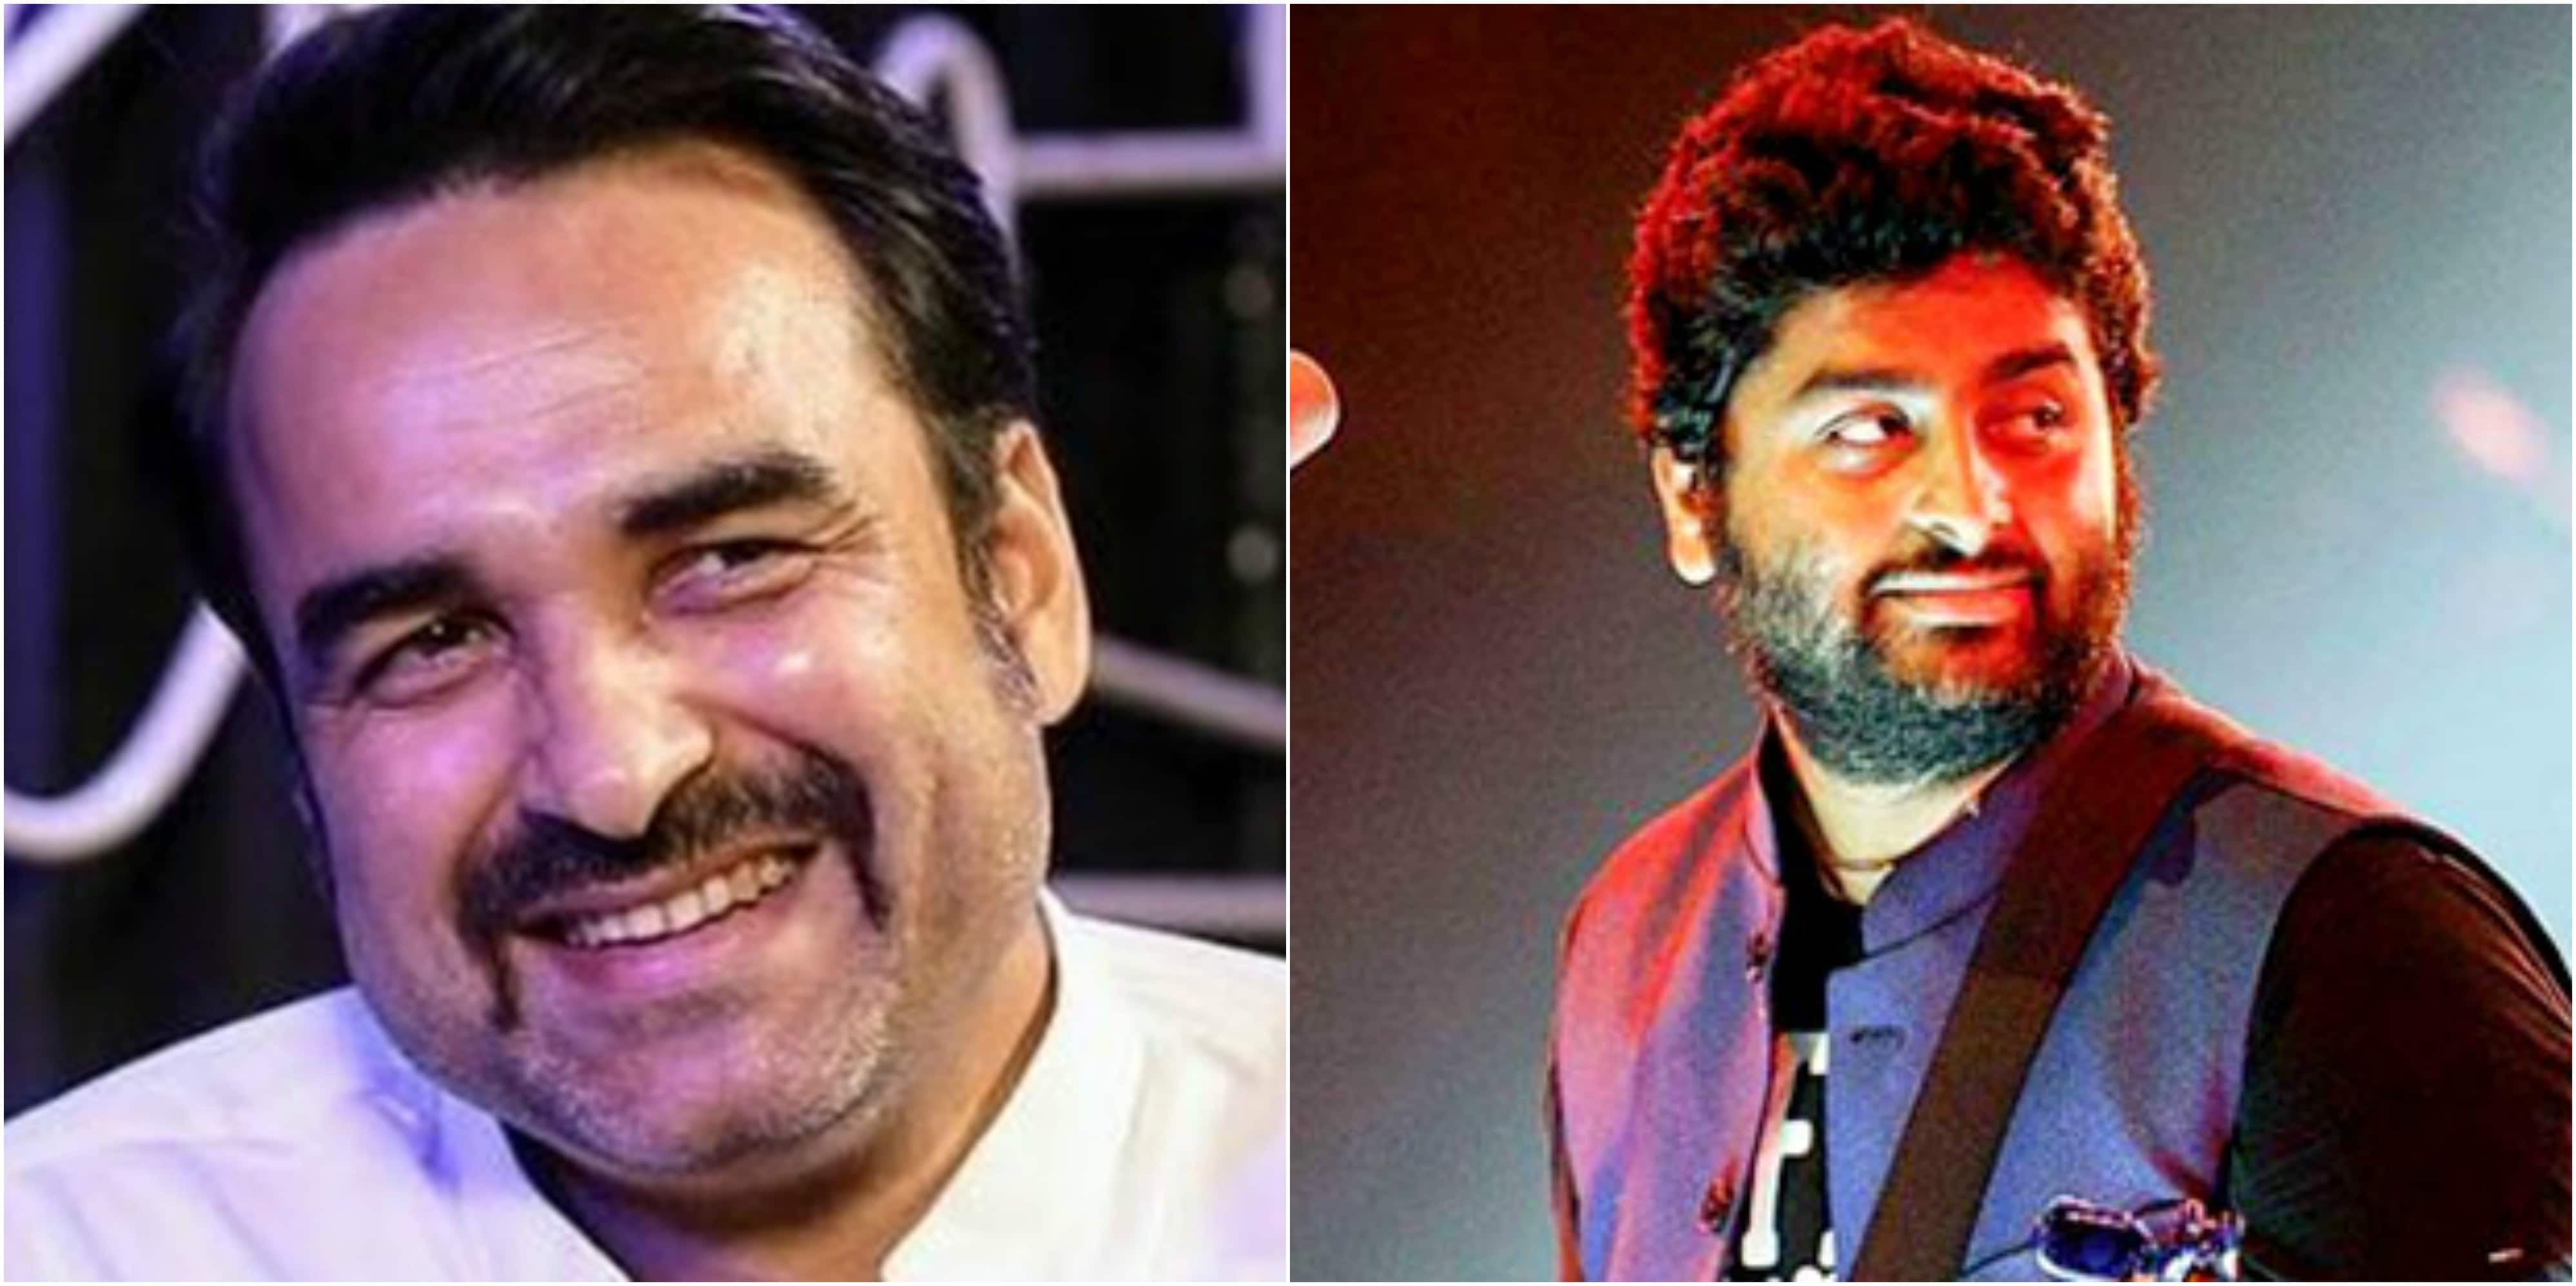 Pankaj Tripathi/Arijit Singh - Pankaj Tripathi is an actor par excellence and Arijit Singh is the best singer Bollywood has produced in a long time and that's why they deserve better. Stop treating them like aloo in Indian cuisine. One cannot just put them in everything a little to make it look legit.